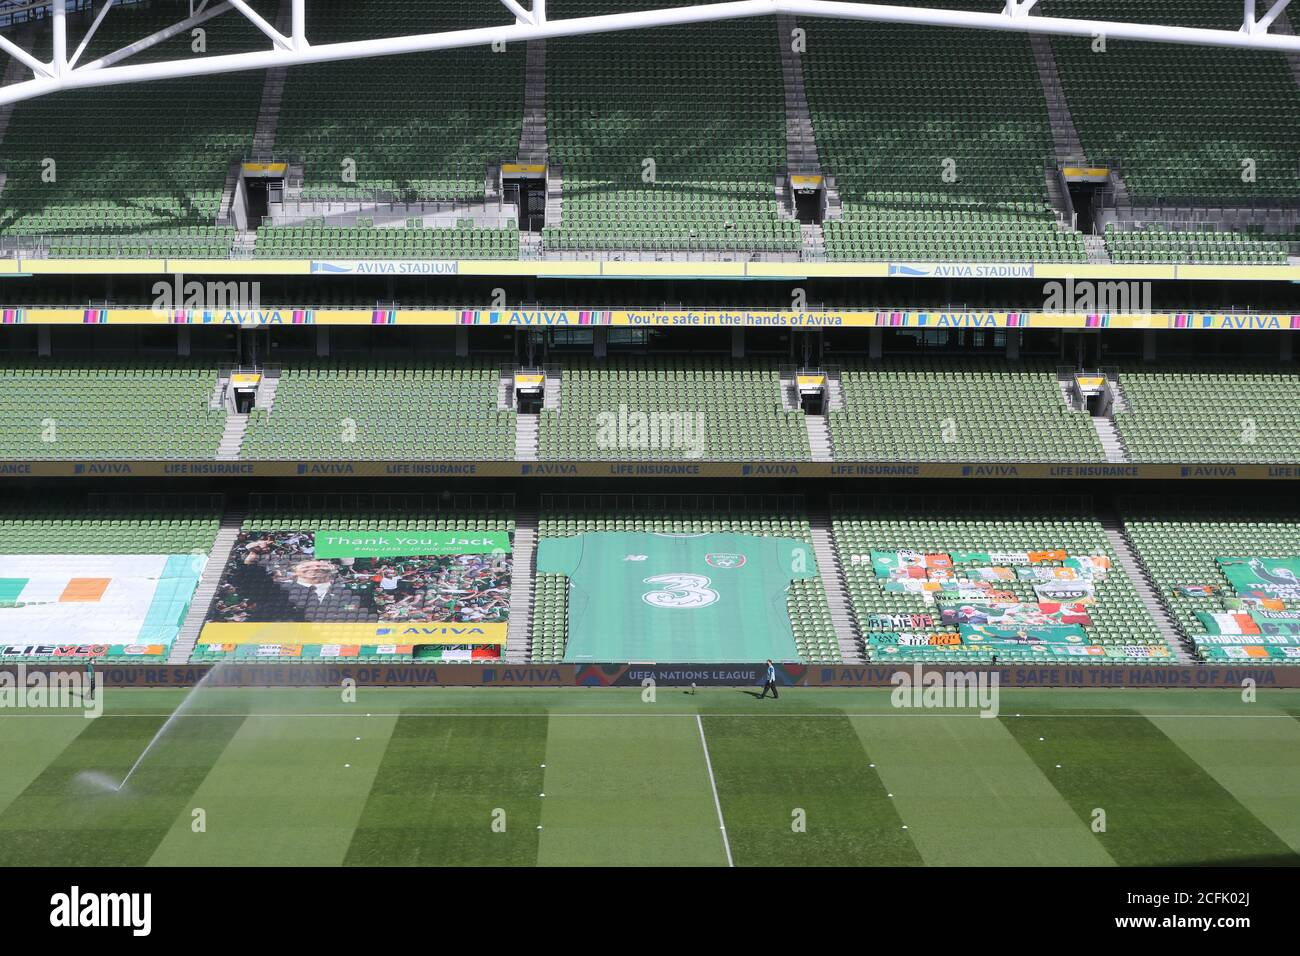 A General View Of Banners In The Stands Including A Tribute To The Late Jack Charlton Before The Uefa Nations League Group 4 League B Match At Aviva Stadium Dublin Stock Photo